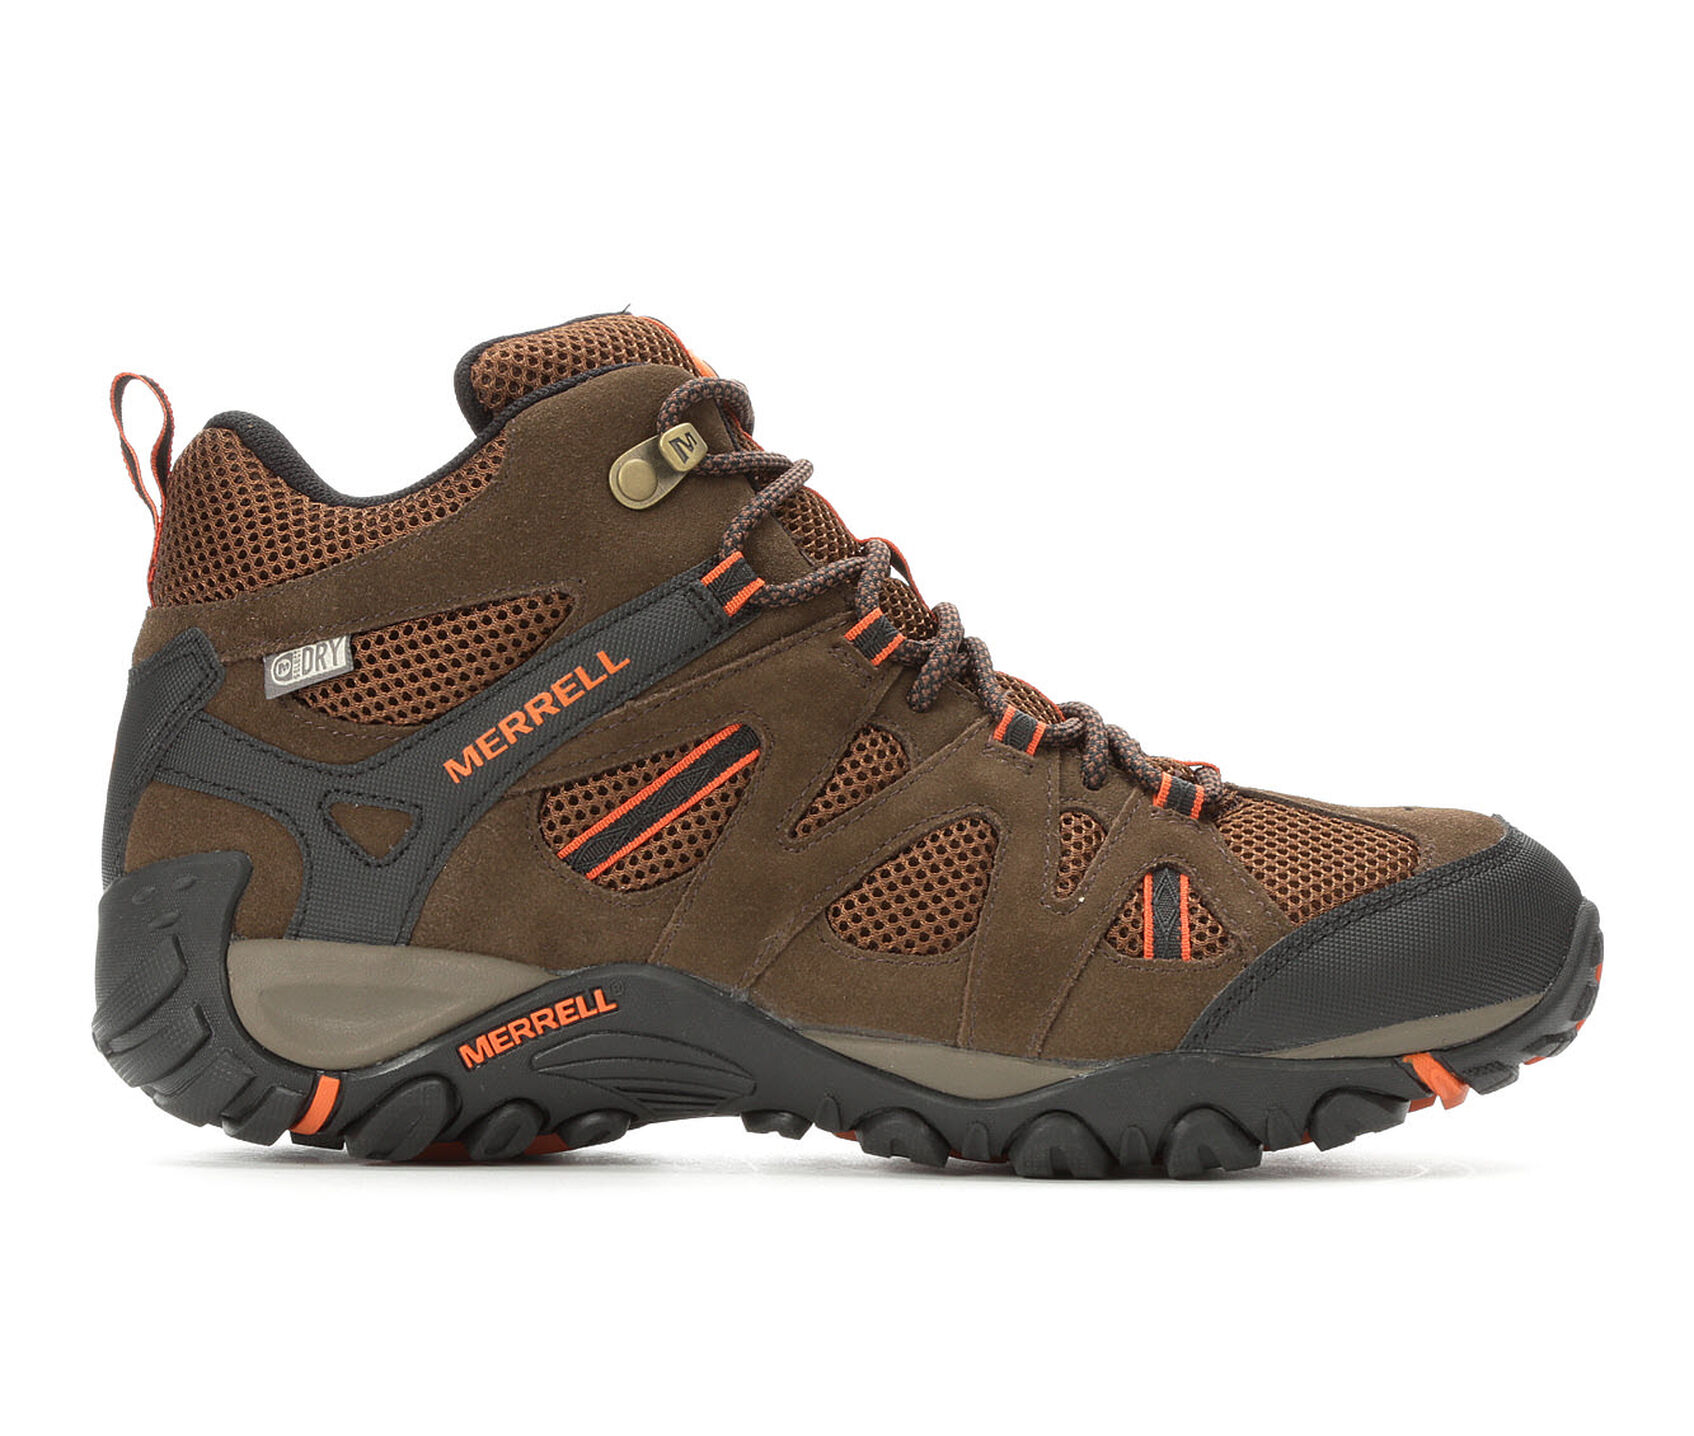 c1c2840b4d1347 Men s Merrell Diverta Mid Waterproof Hiking Boots